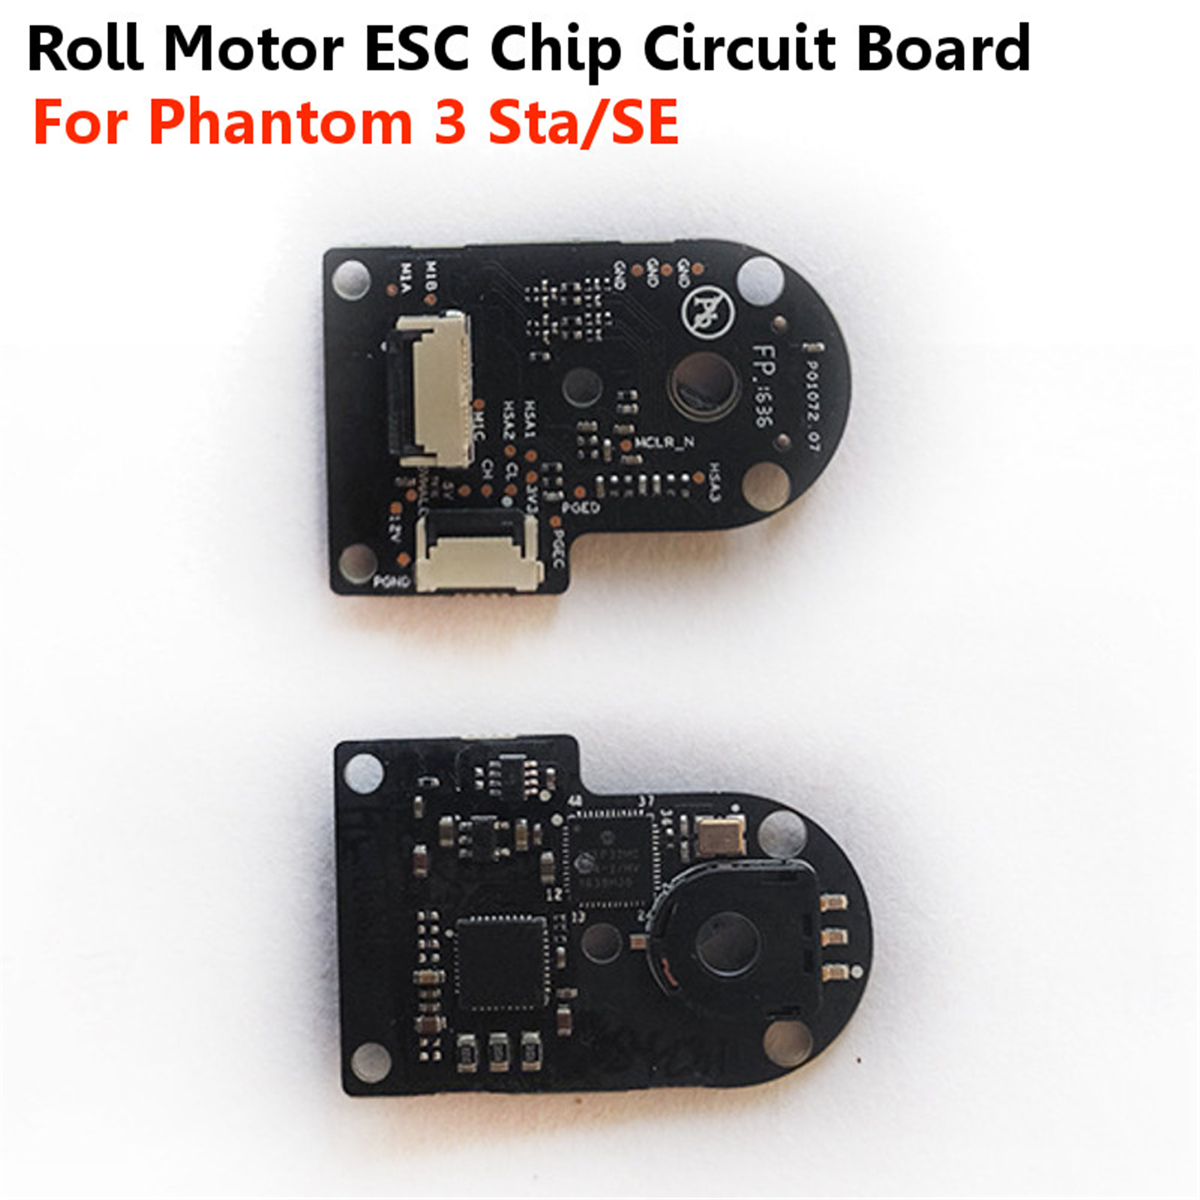 Roll/Pitch Motor ESC Chip Circuit Board RC Quadcopter Parts for DJI Phantom 3 Adv/Pro Sta/SE - Photo: 3